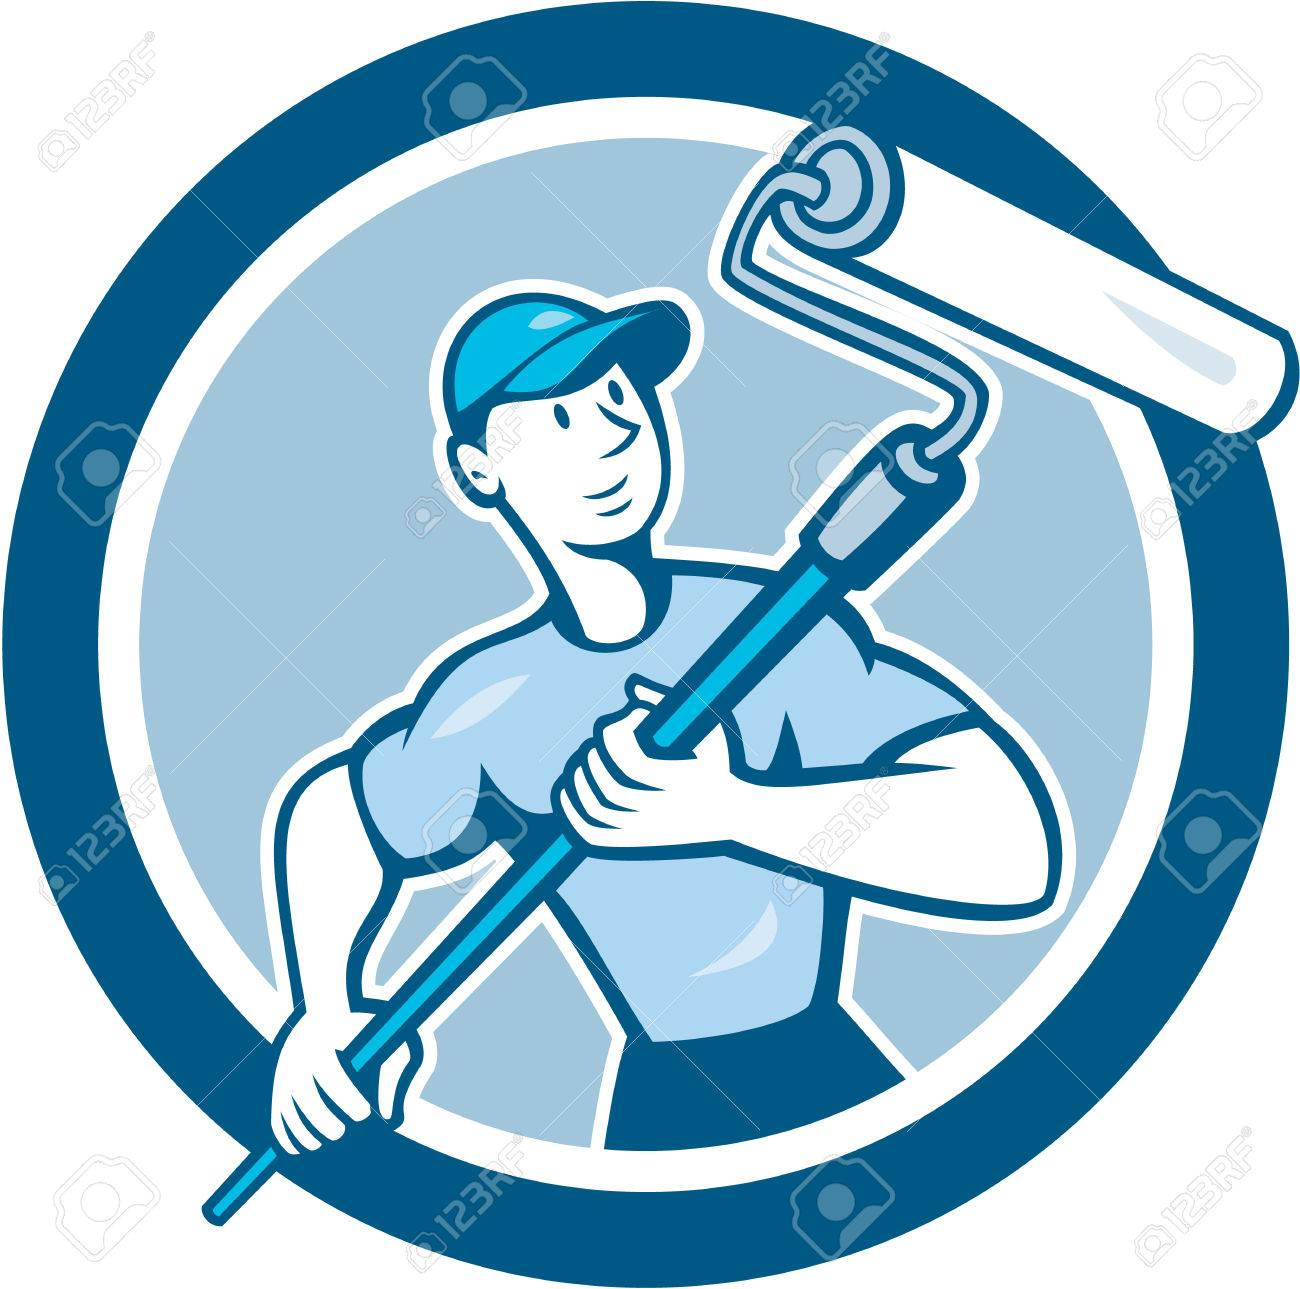 Illustration of a house painter handyman holding paint roller set inside circle on isolated background done in cartoon style. - 31296790